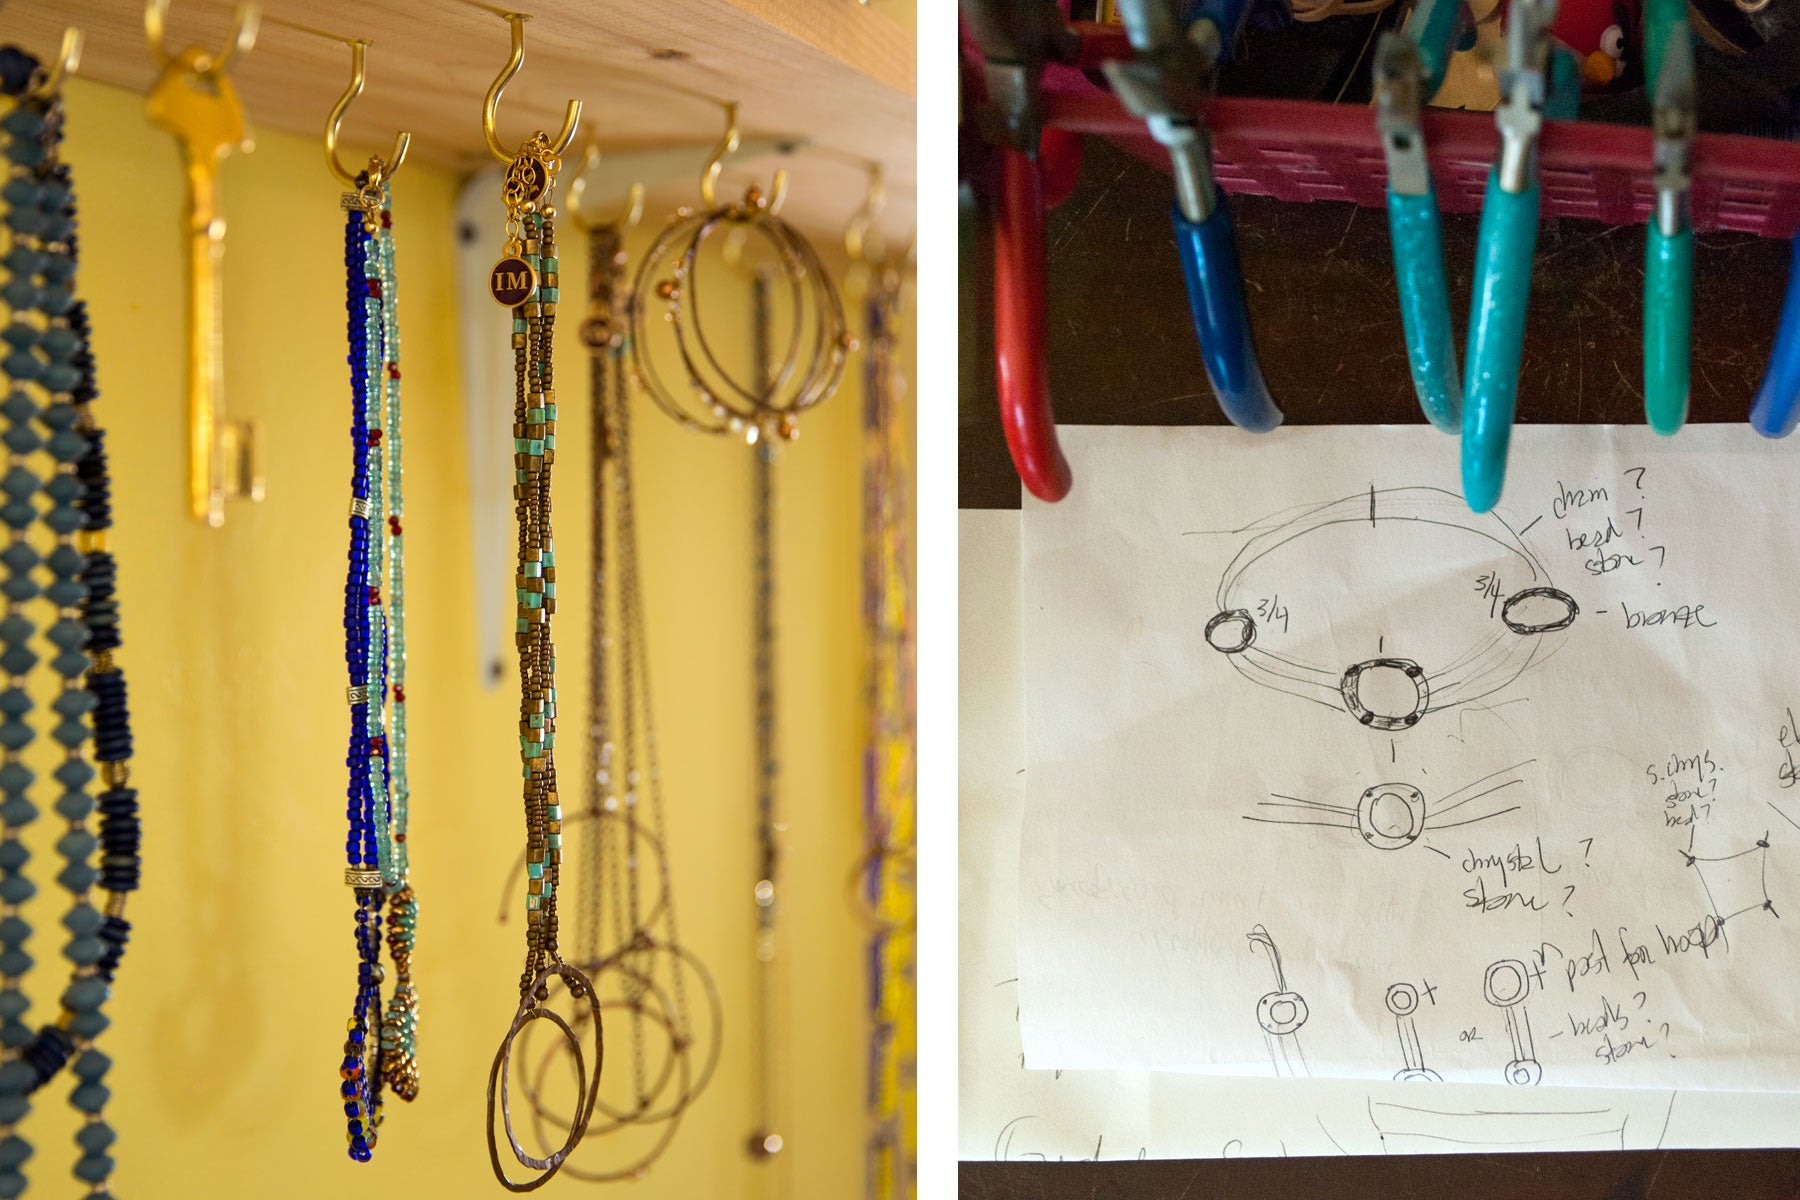 Beads and tools in the studio of portland, maine based jewelry-maker, Sharon Herrick of Illuminated Me